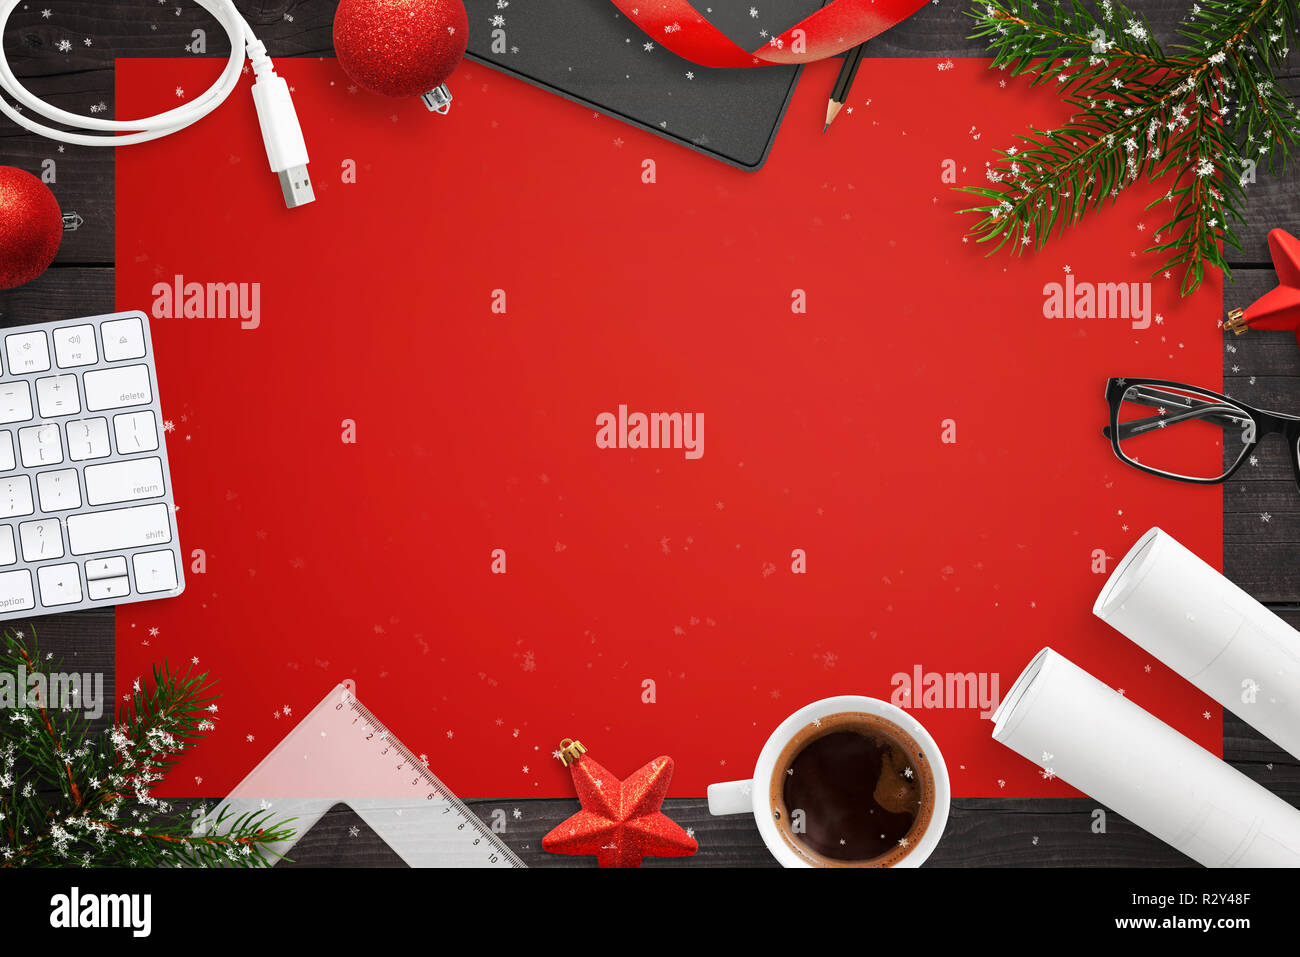 . Tech devices and Christmas decorations on deks  Red table cloth in